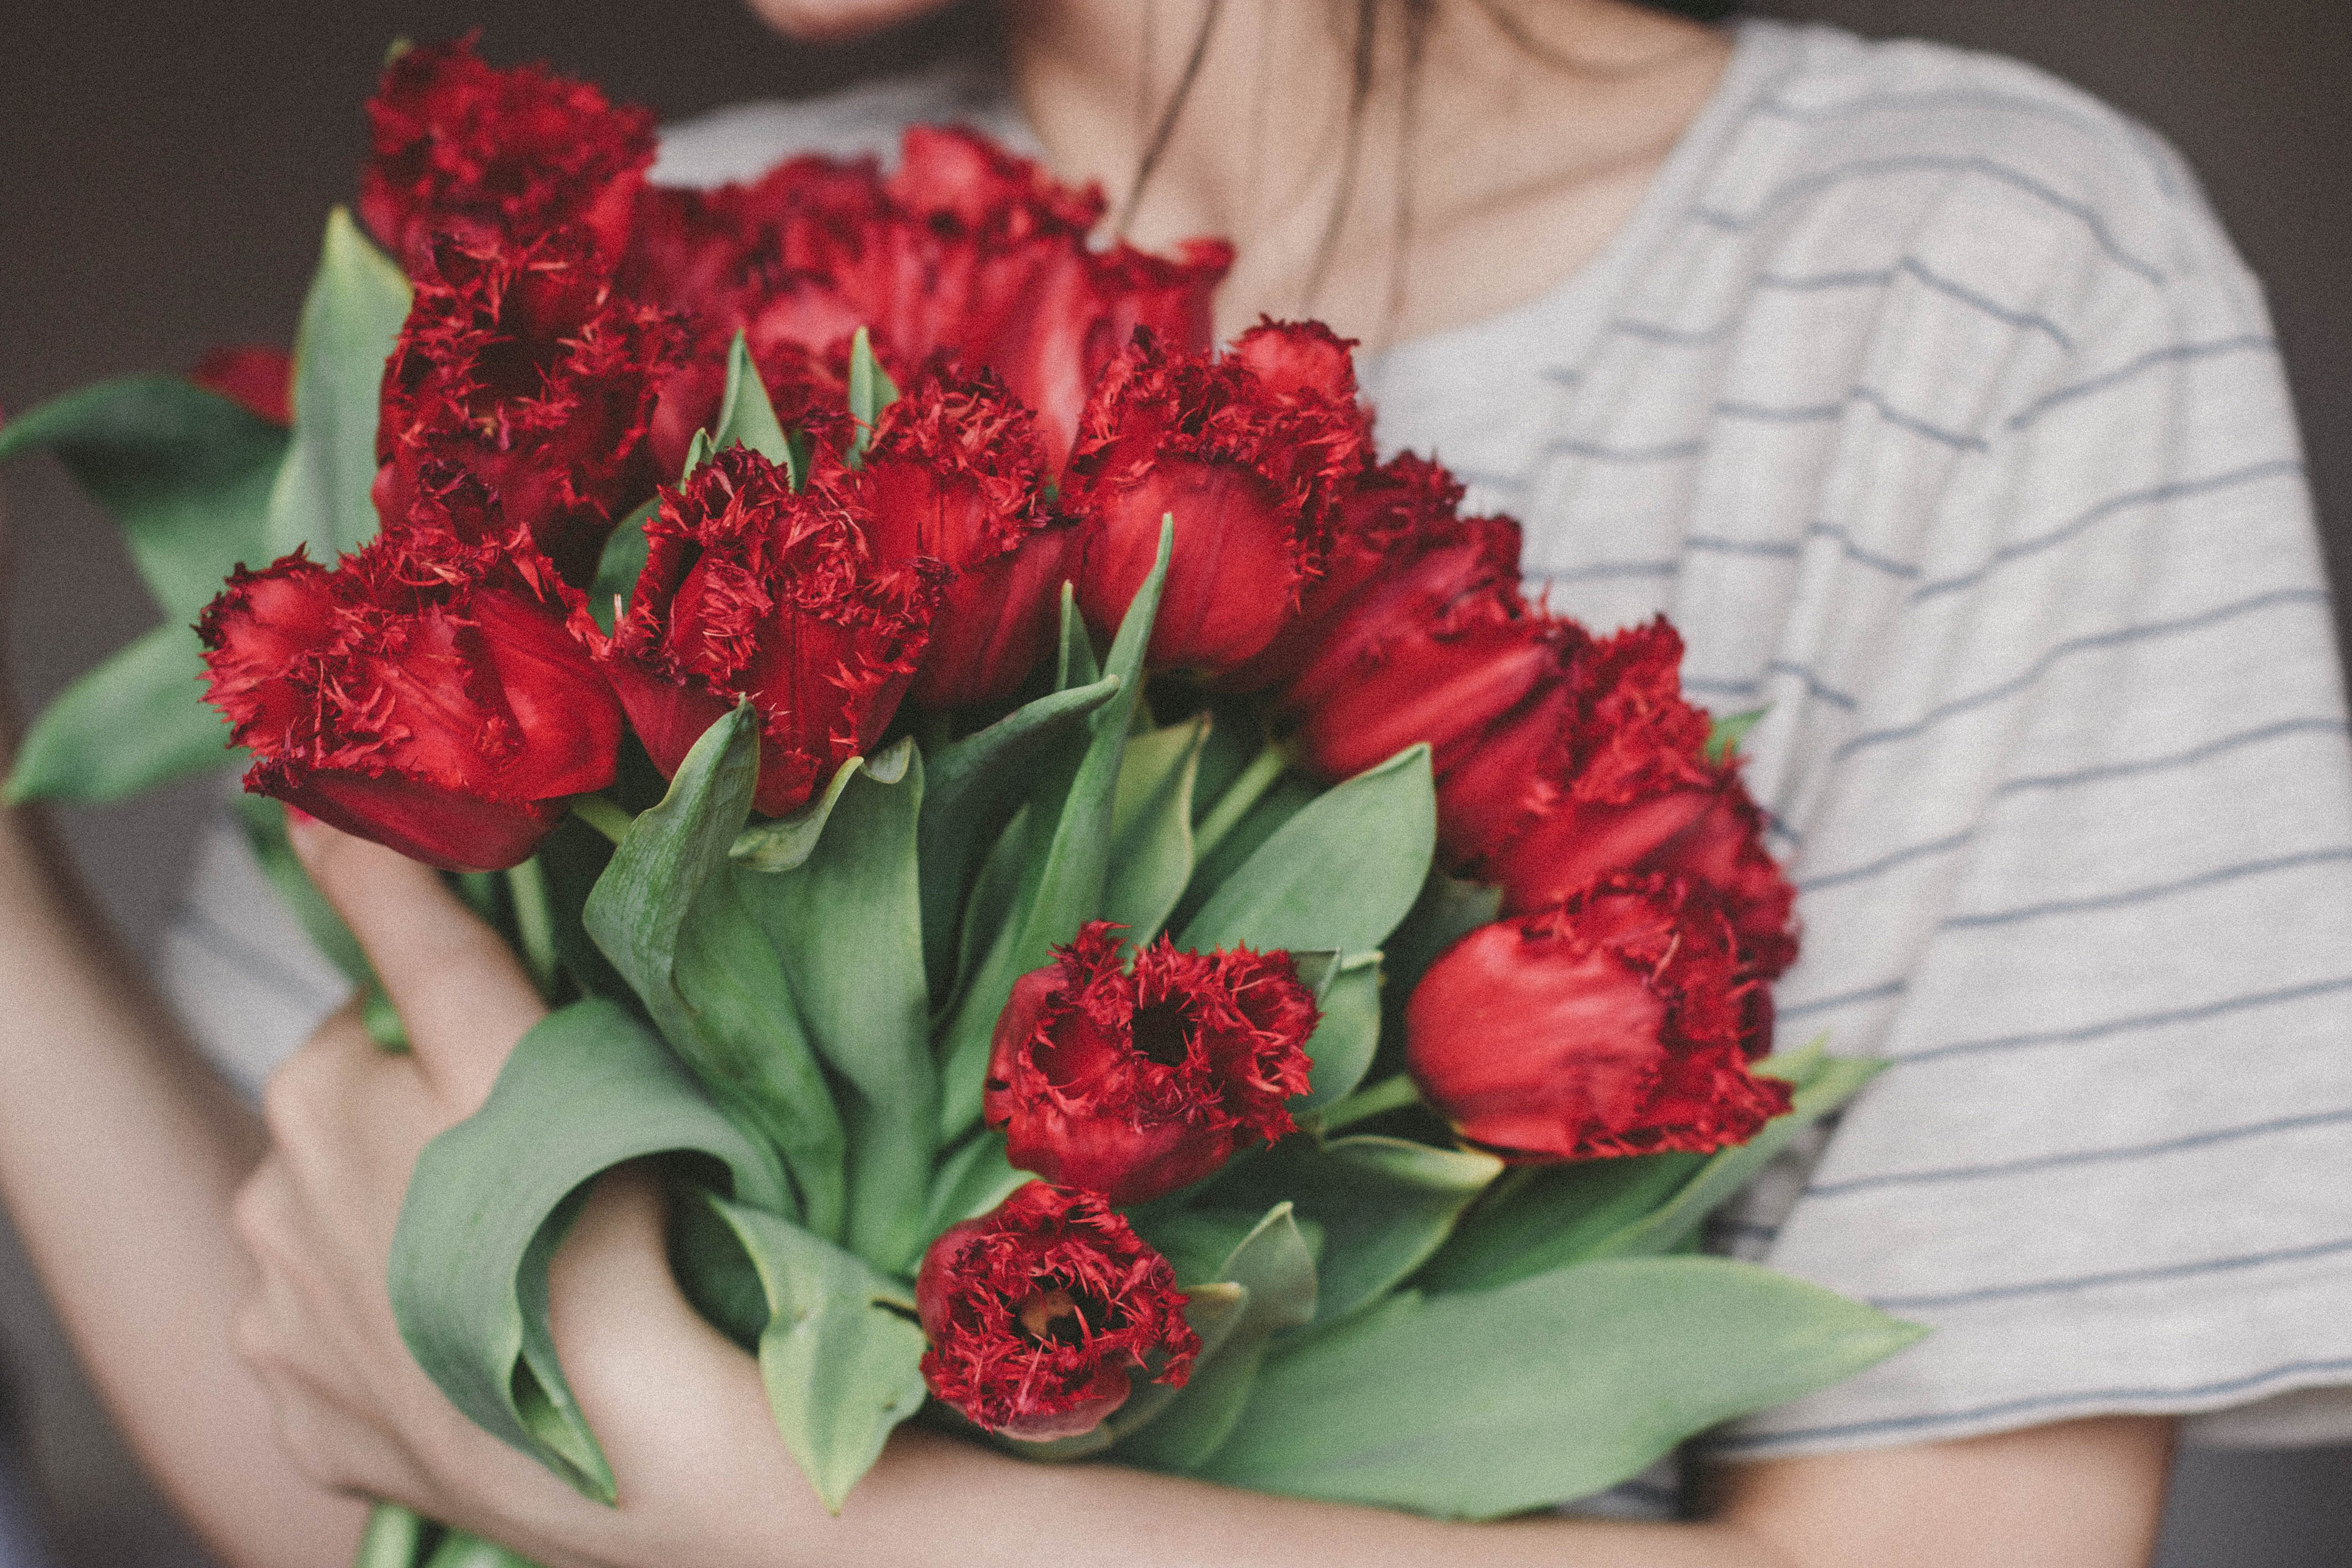 Woman Holding Bouquet of Red Flowers